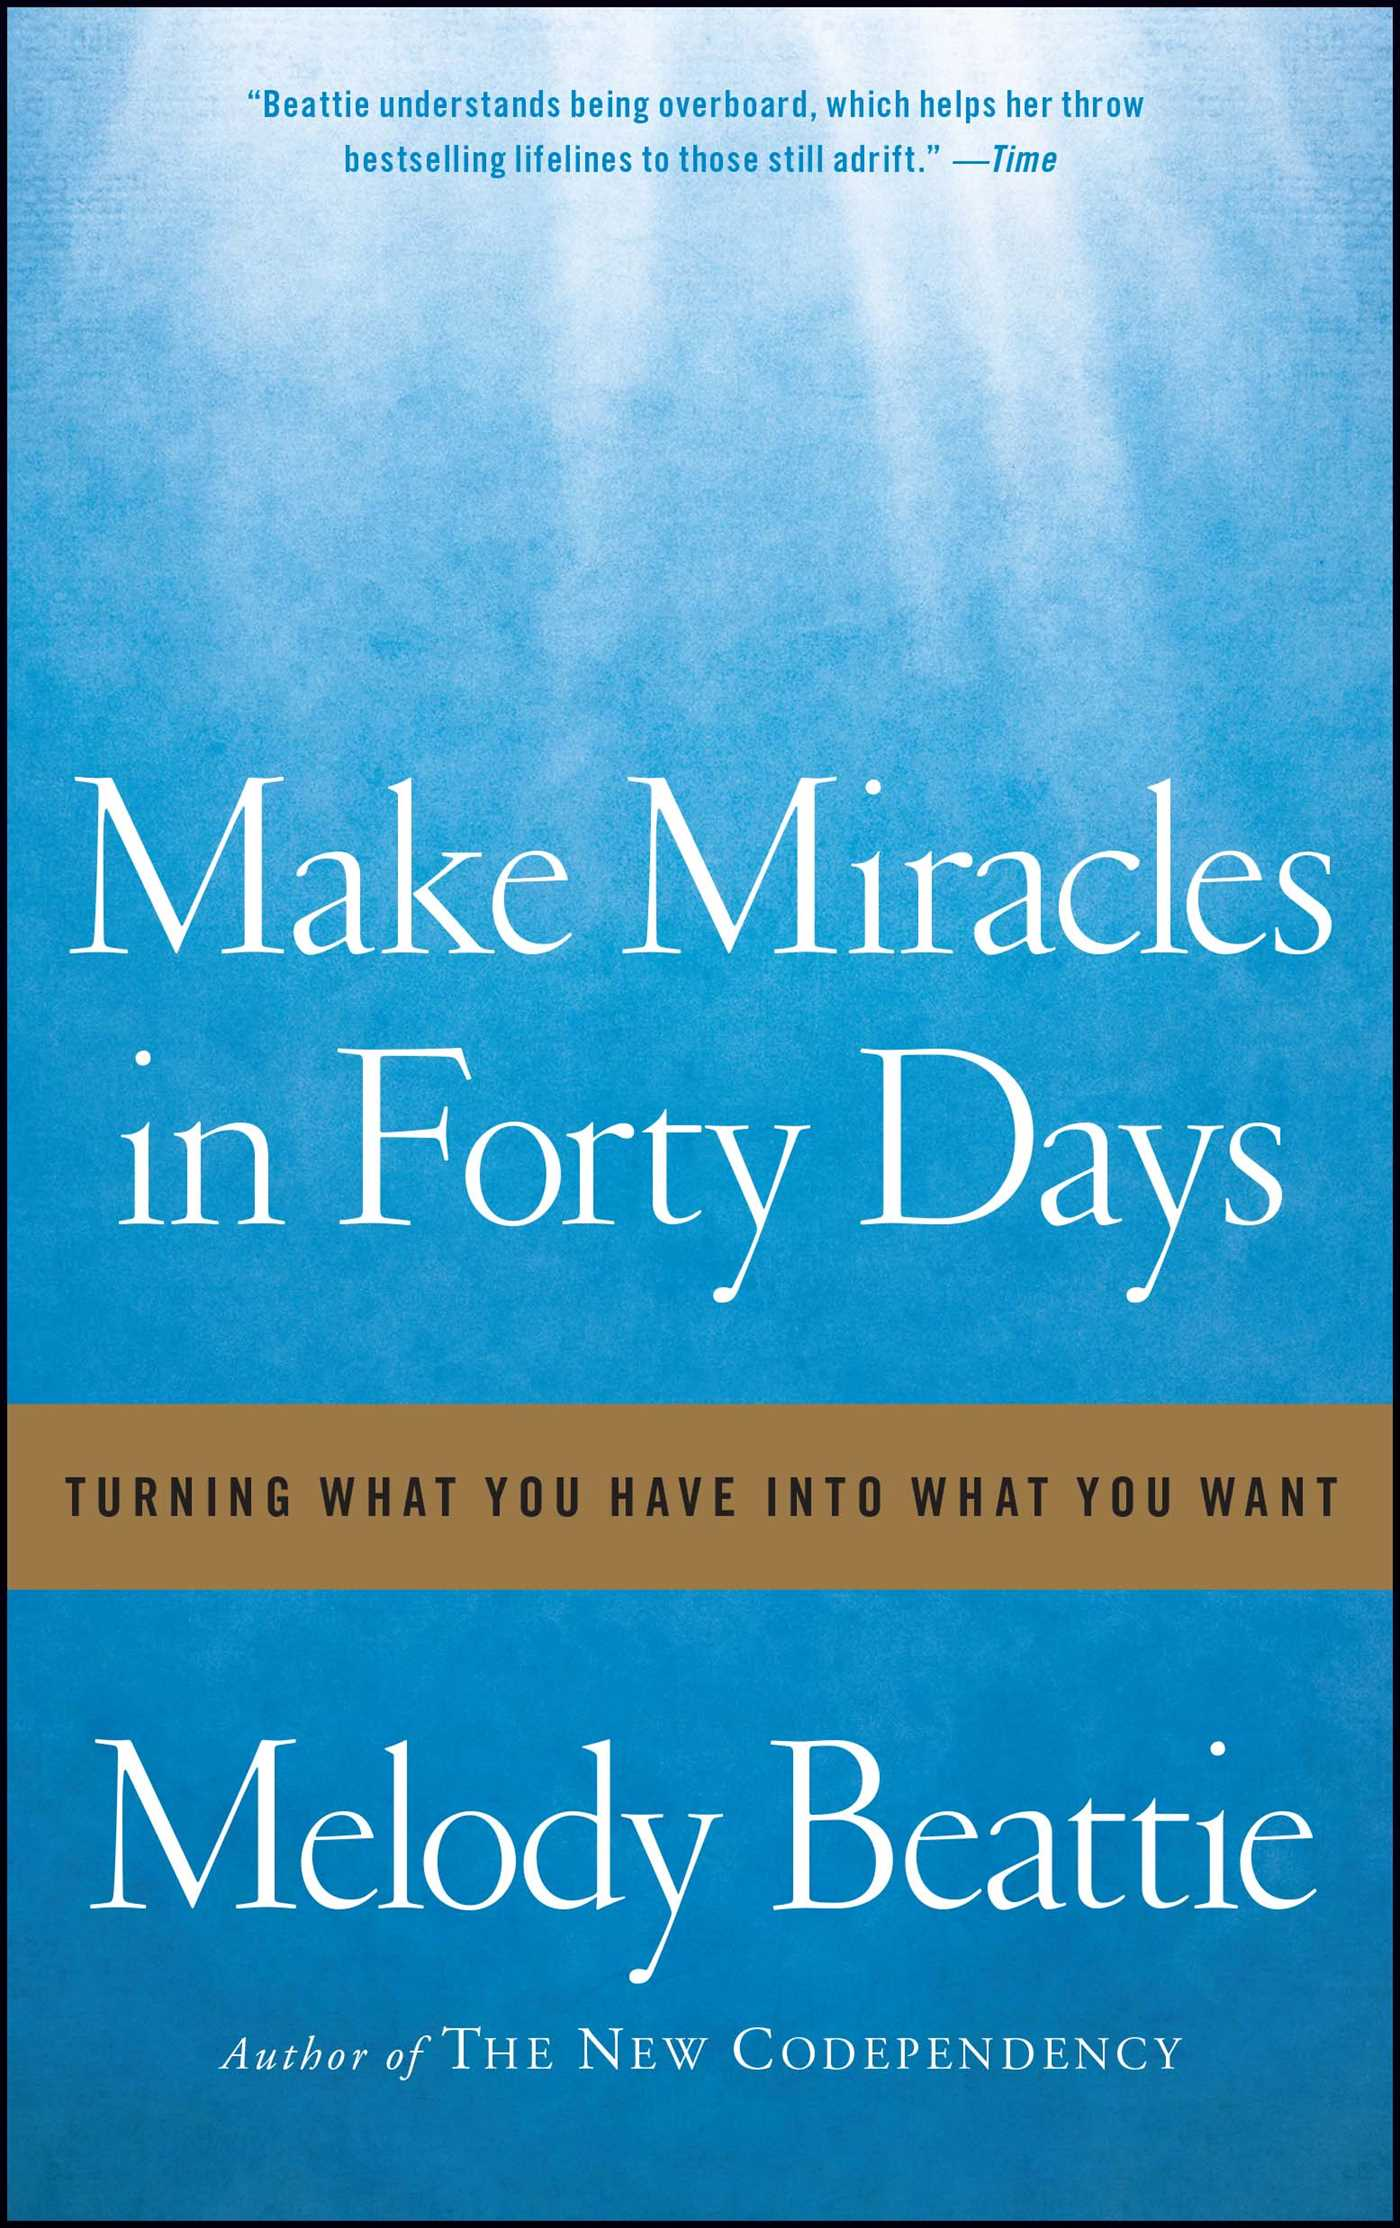 Make-miracles-in-forty-days-9781439117705_hr